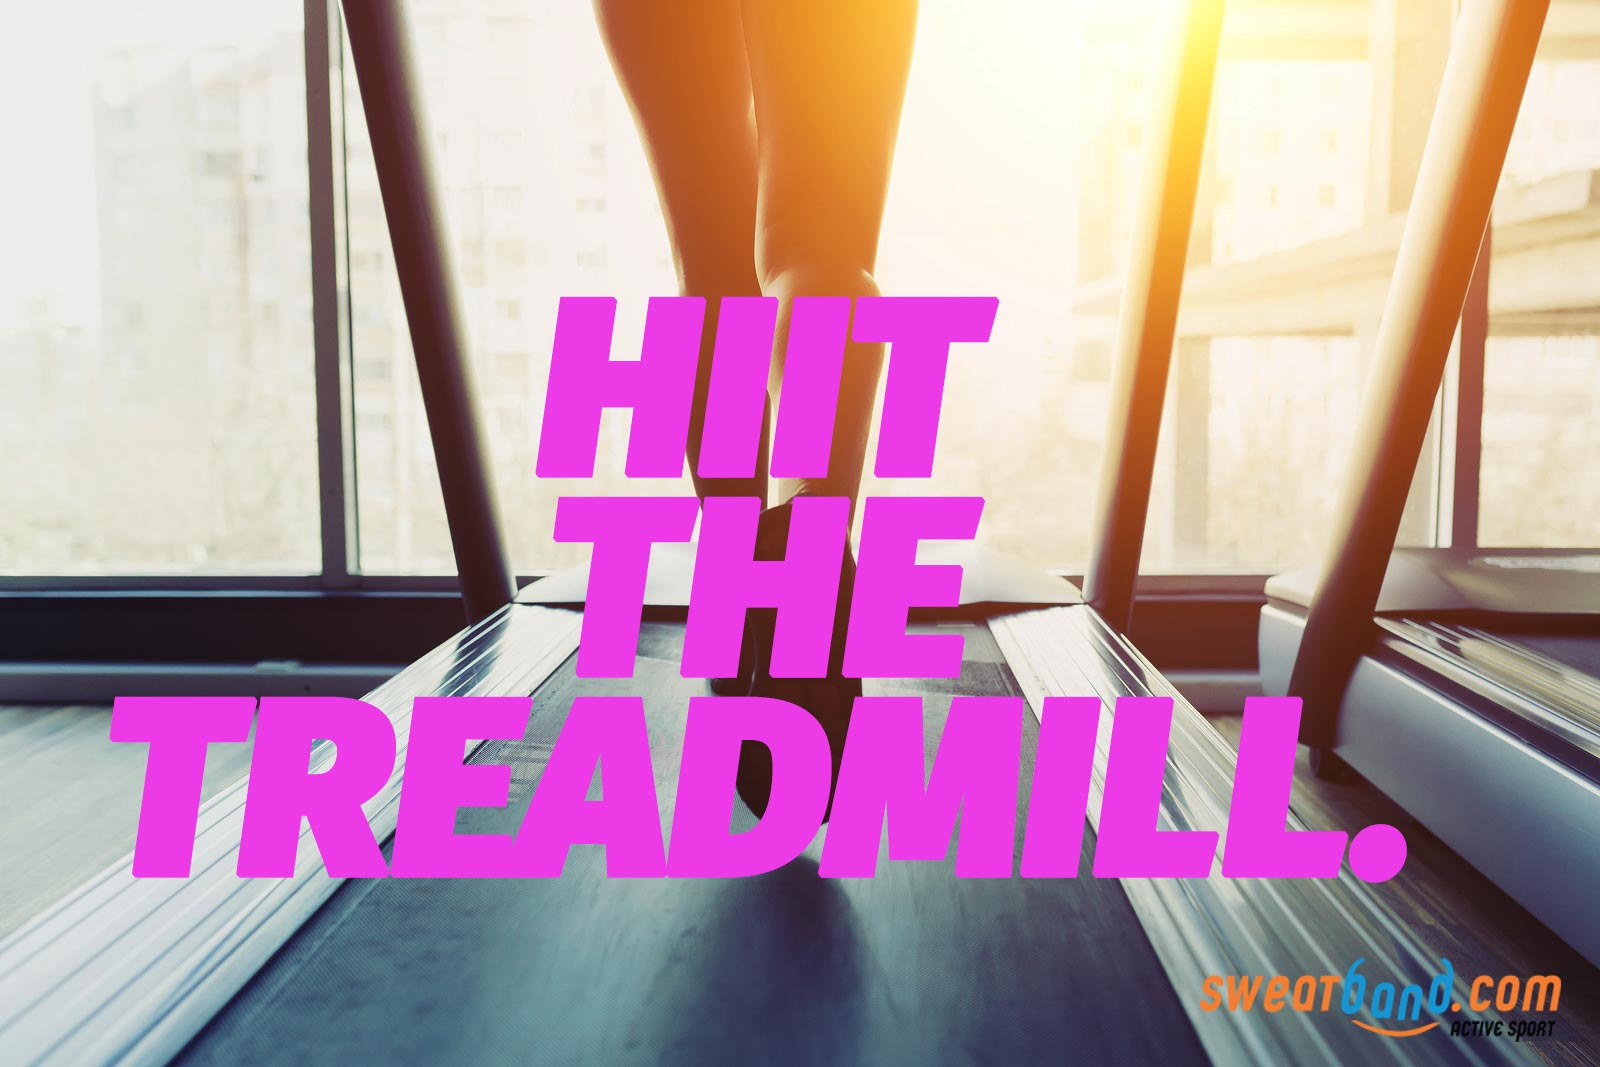 Hiit the treadmill with an intense workout